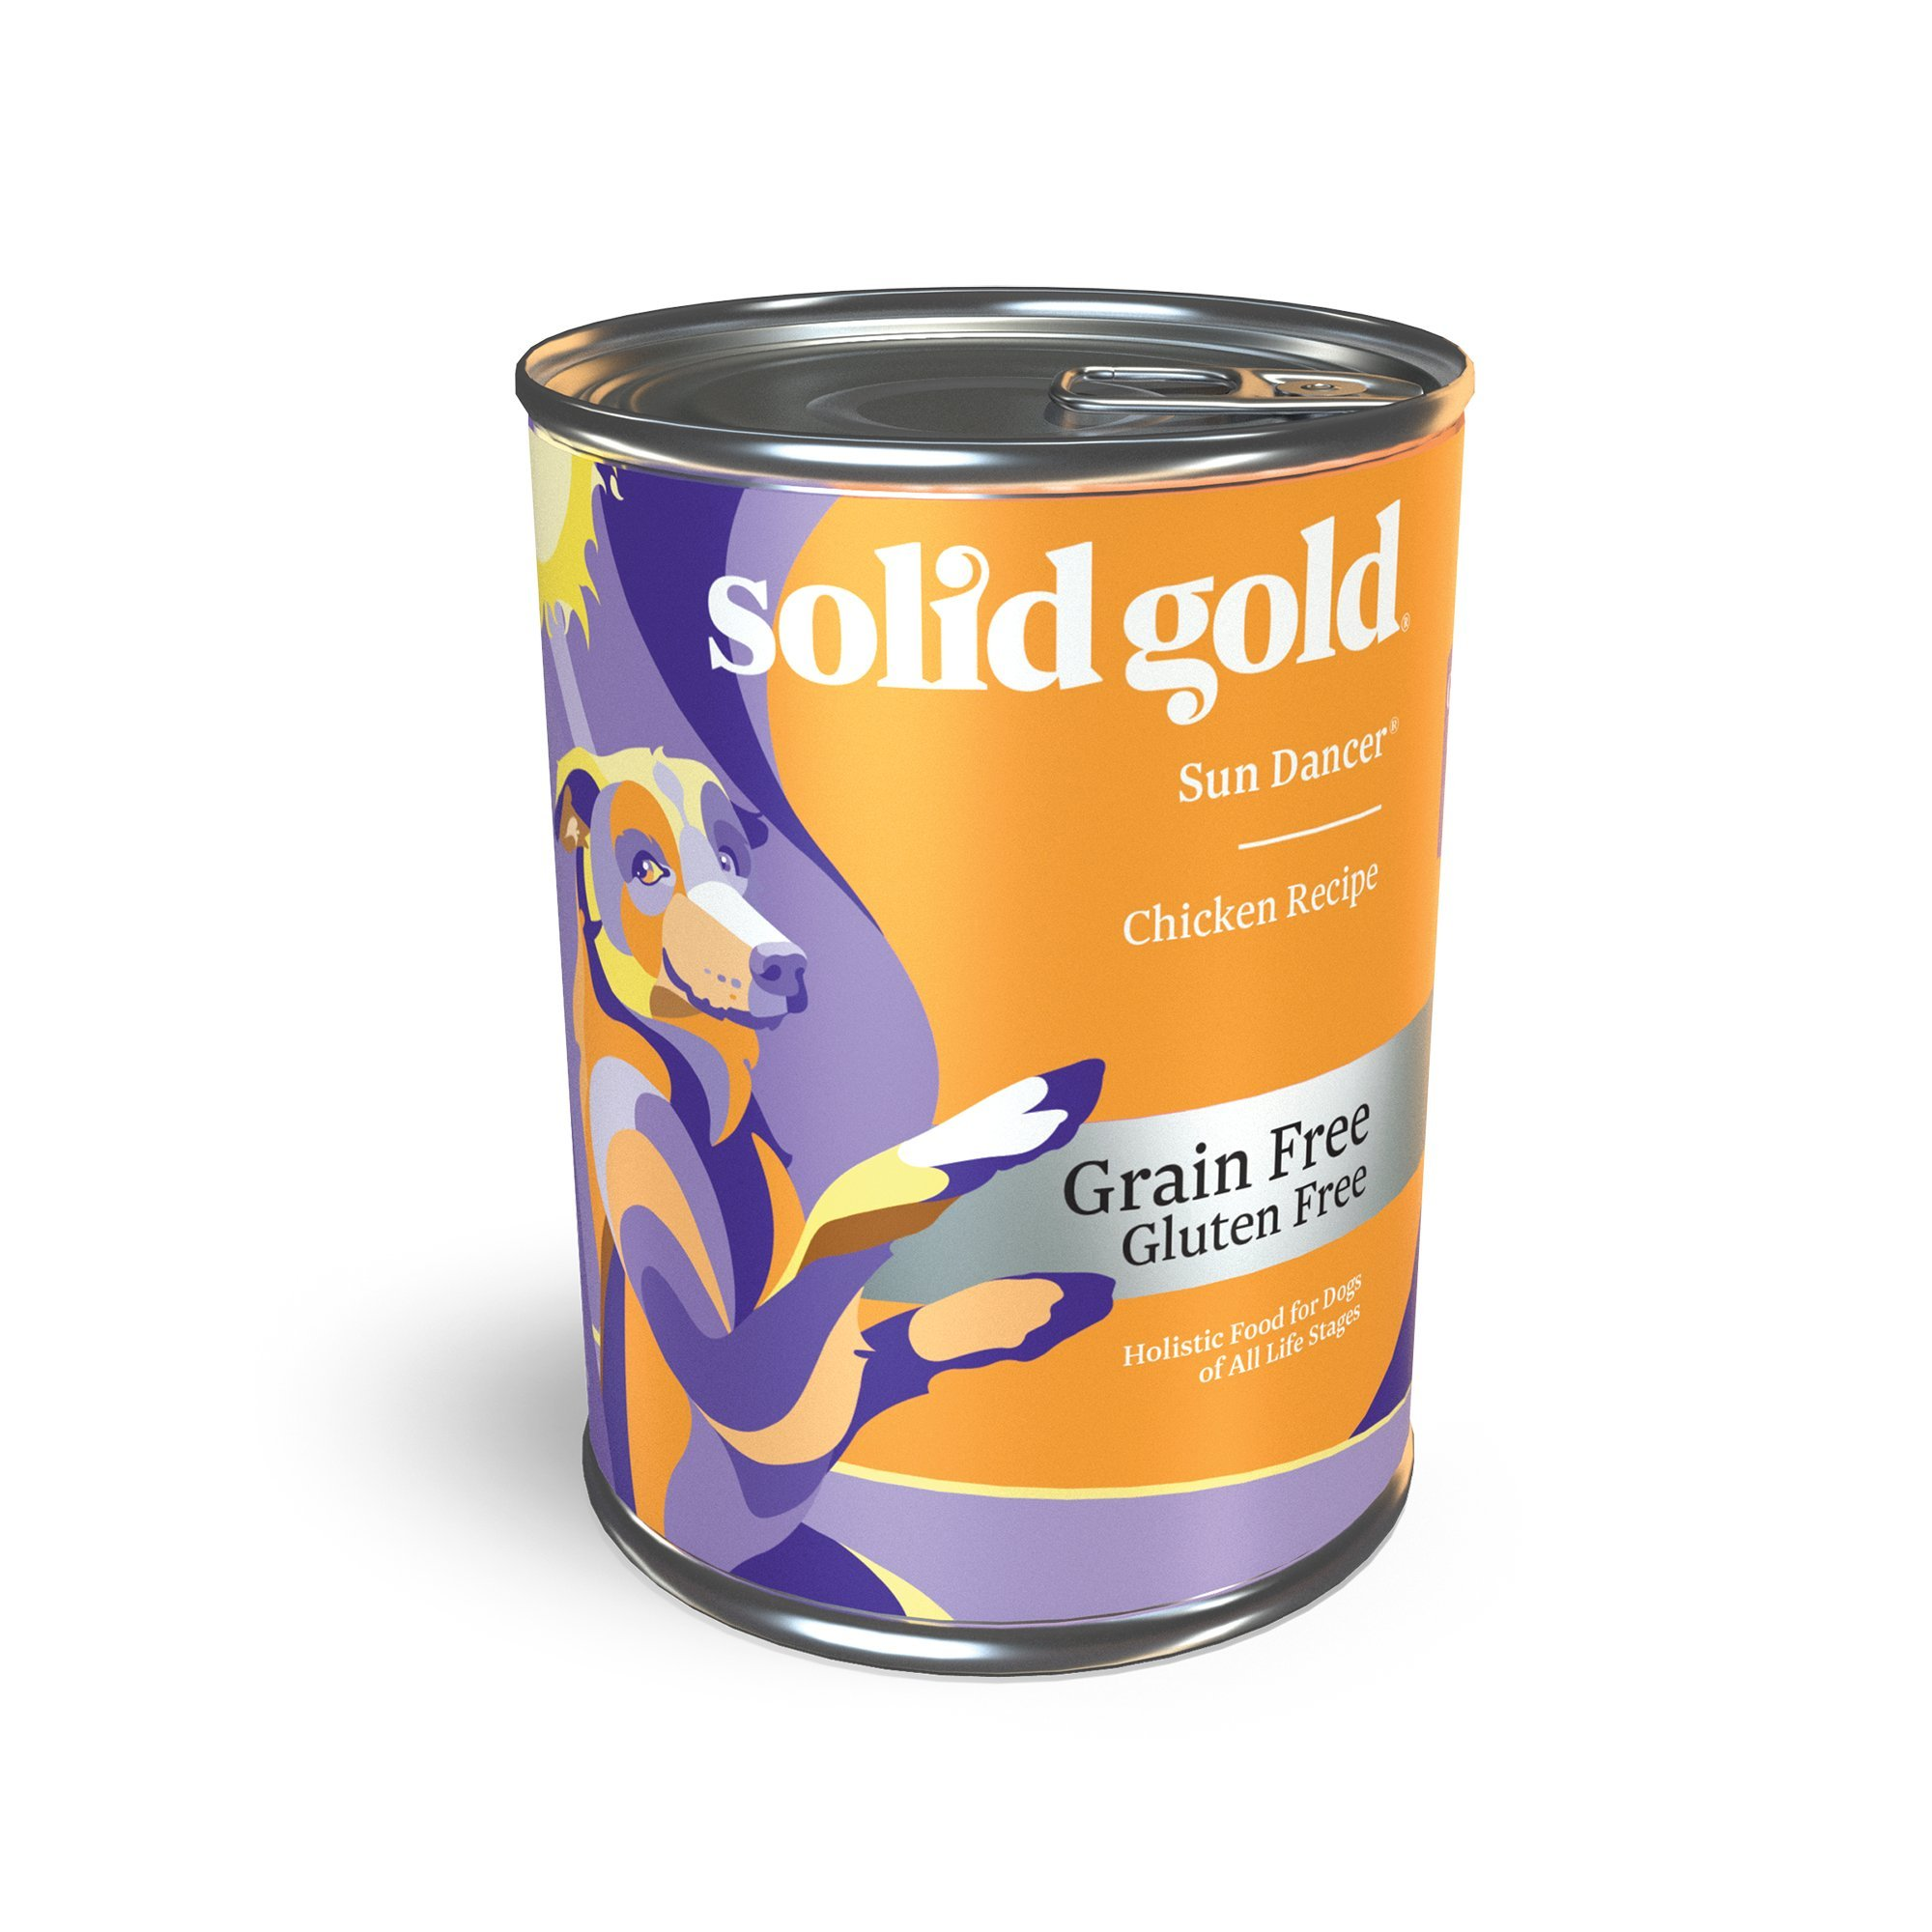 Solid Gold Grain Free Wet Dog Food; Sun Dancer High Protein With Real Chicken & Tapioca, 12Ct/13.2Oz Can by Solid Gold